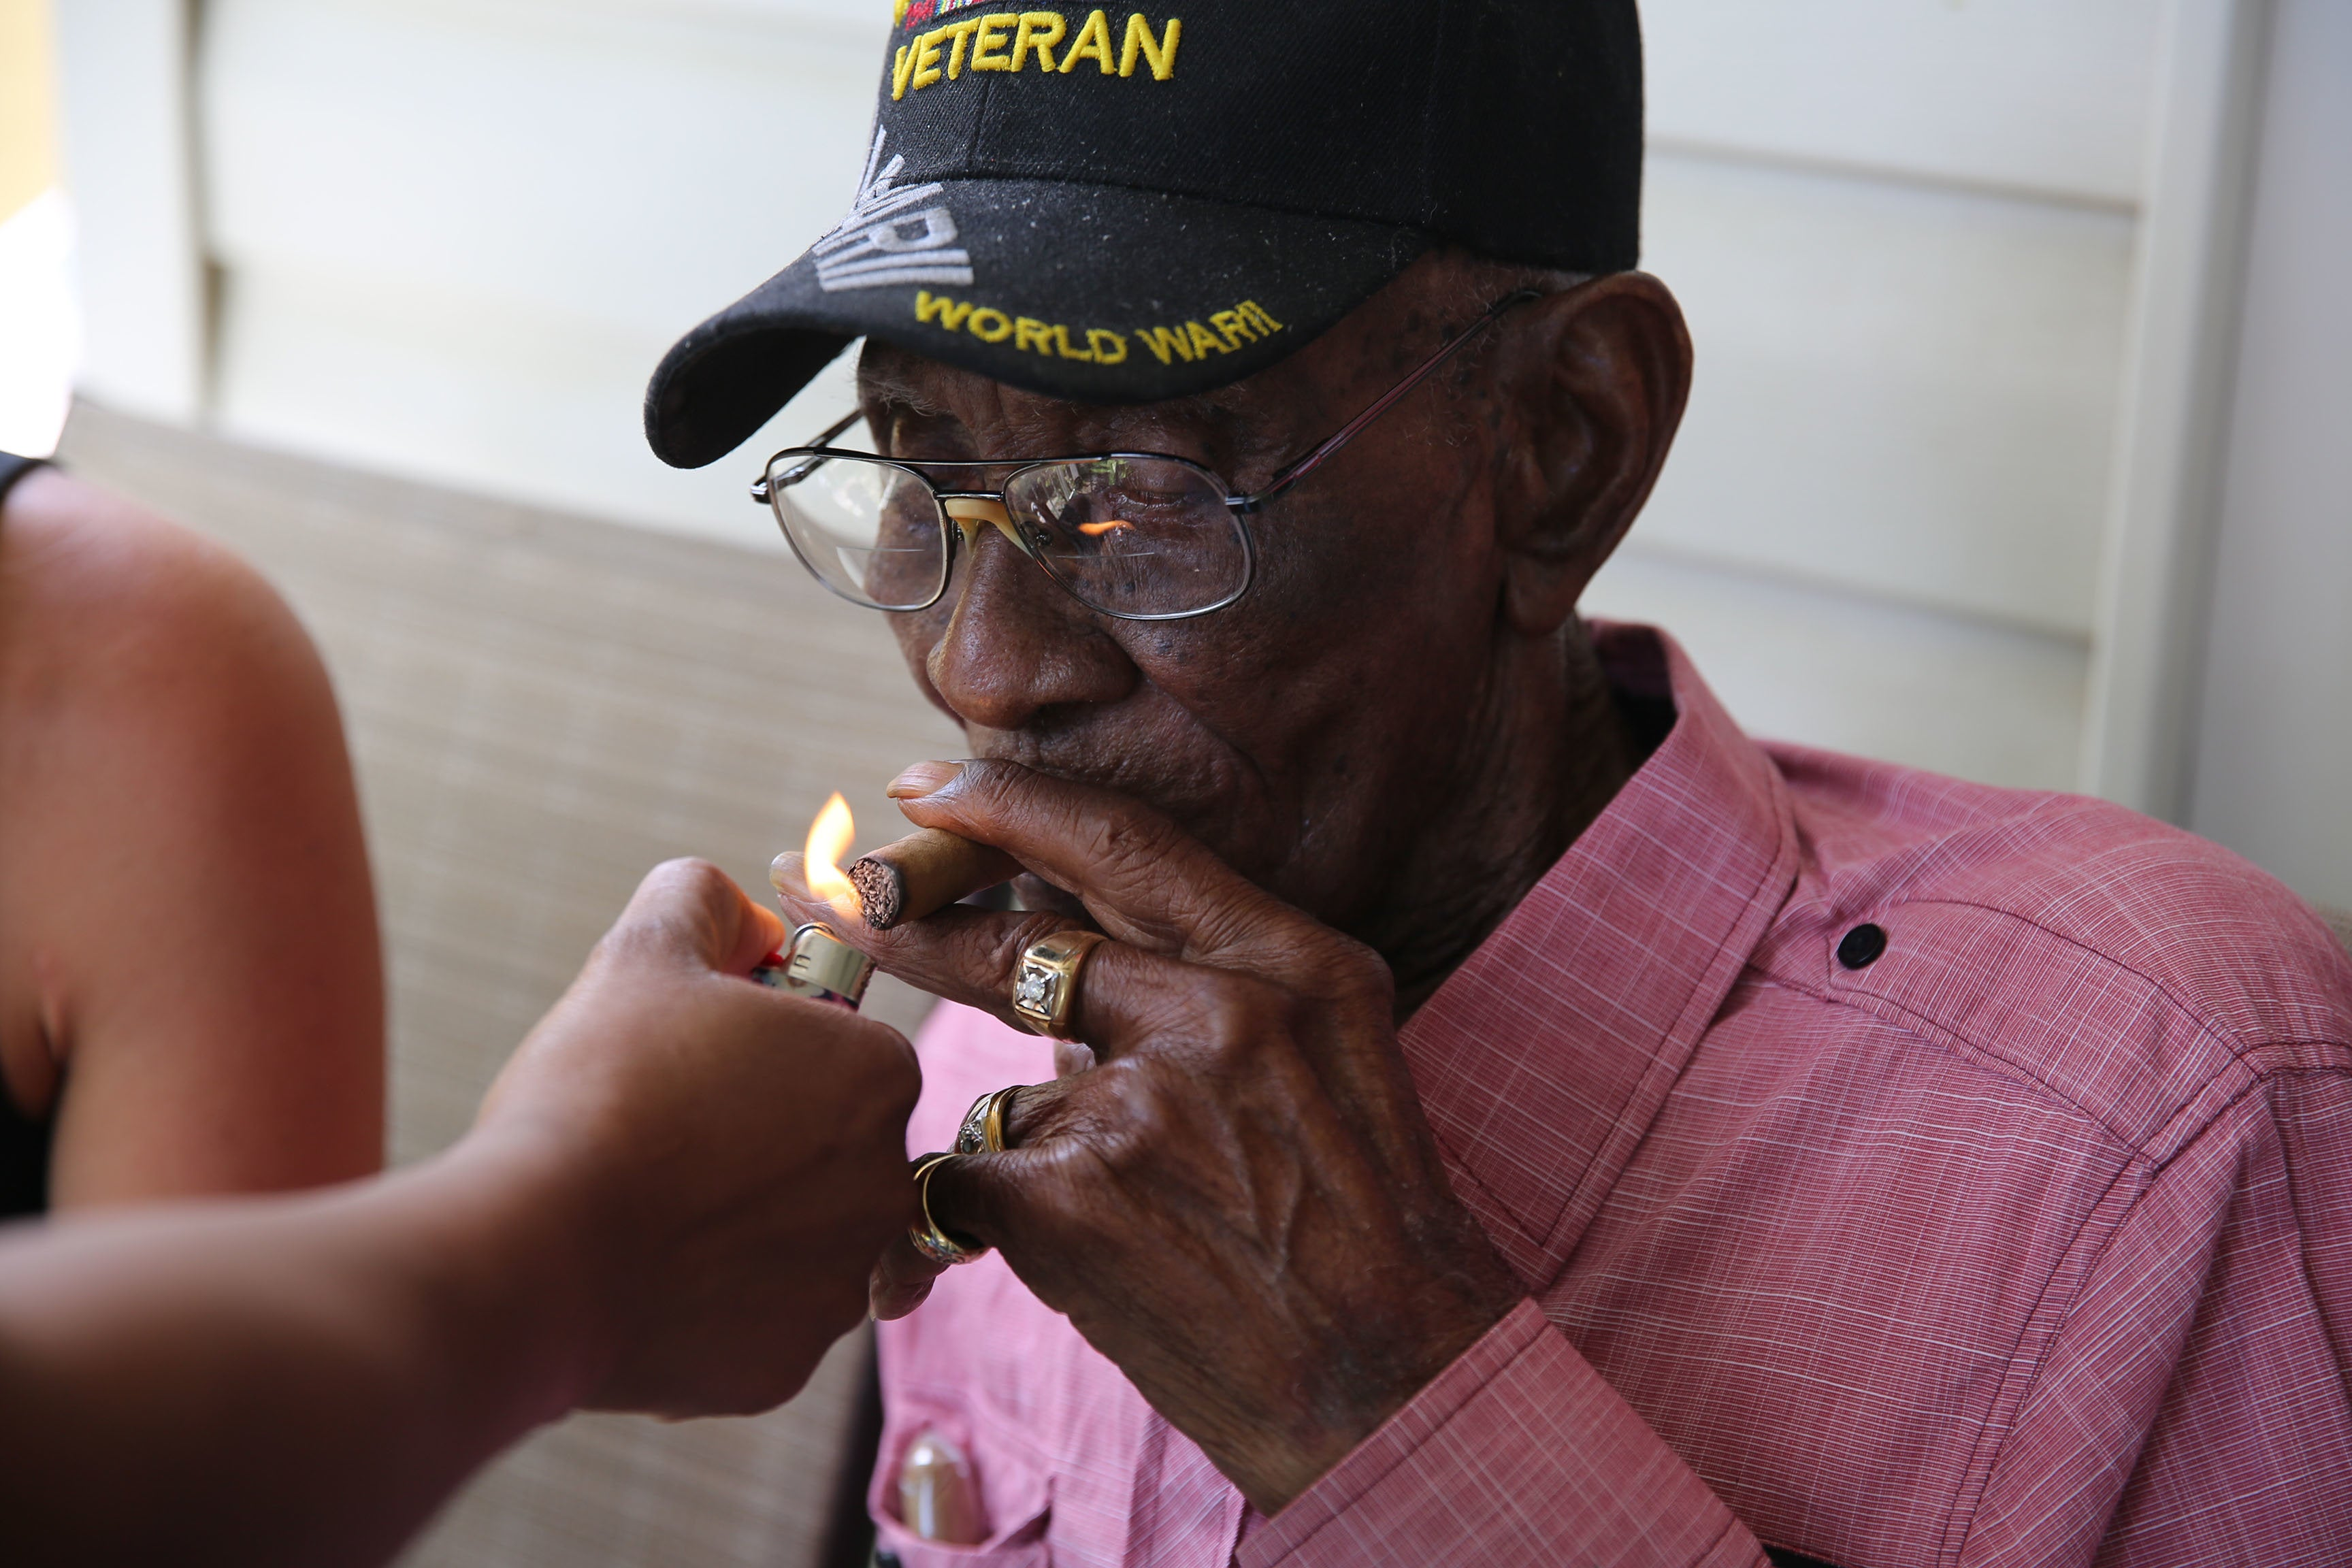 America's oldest veteran gives you the secrets to life at 112